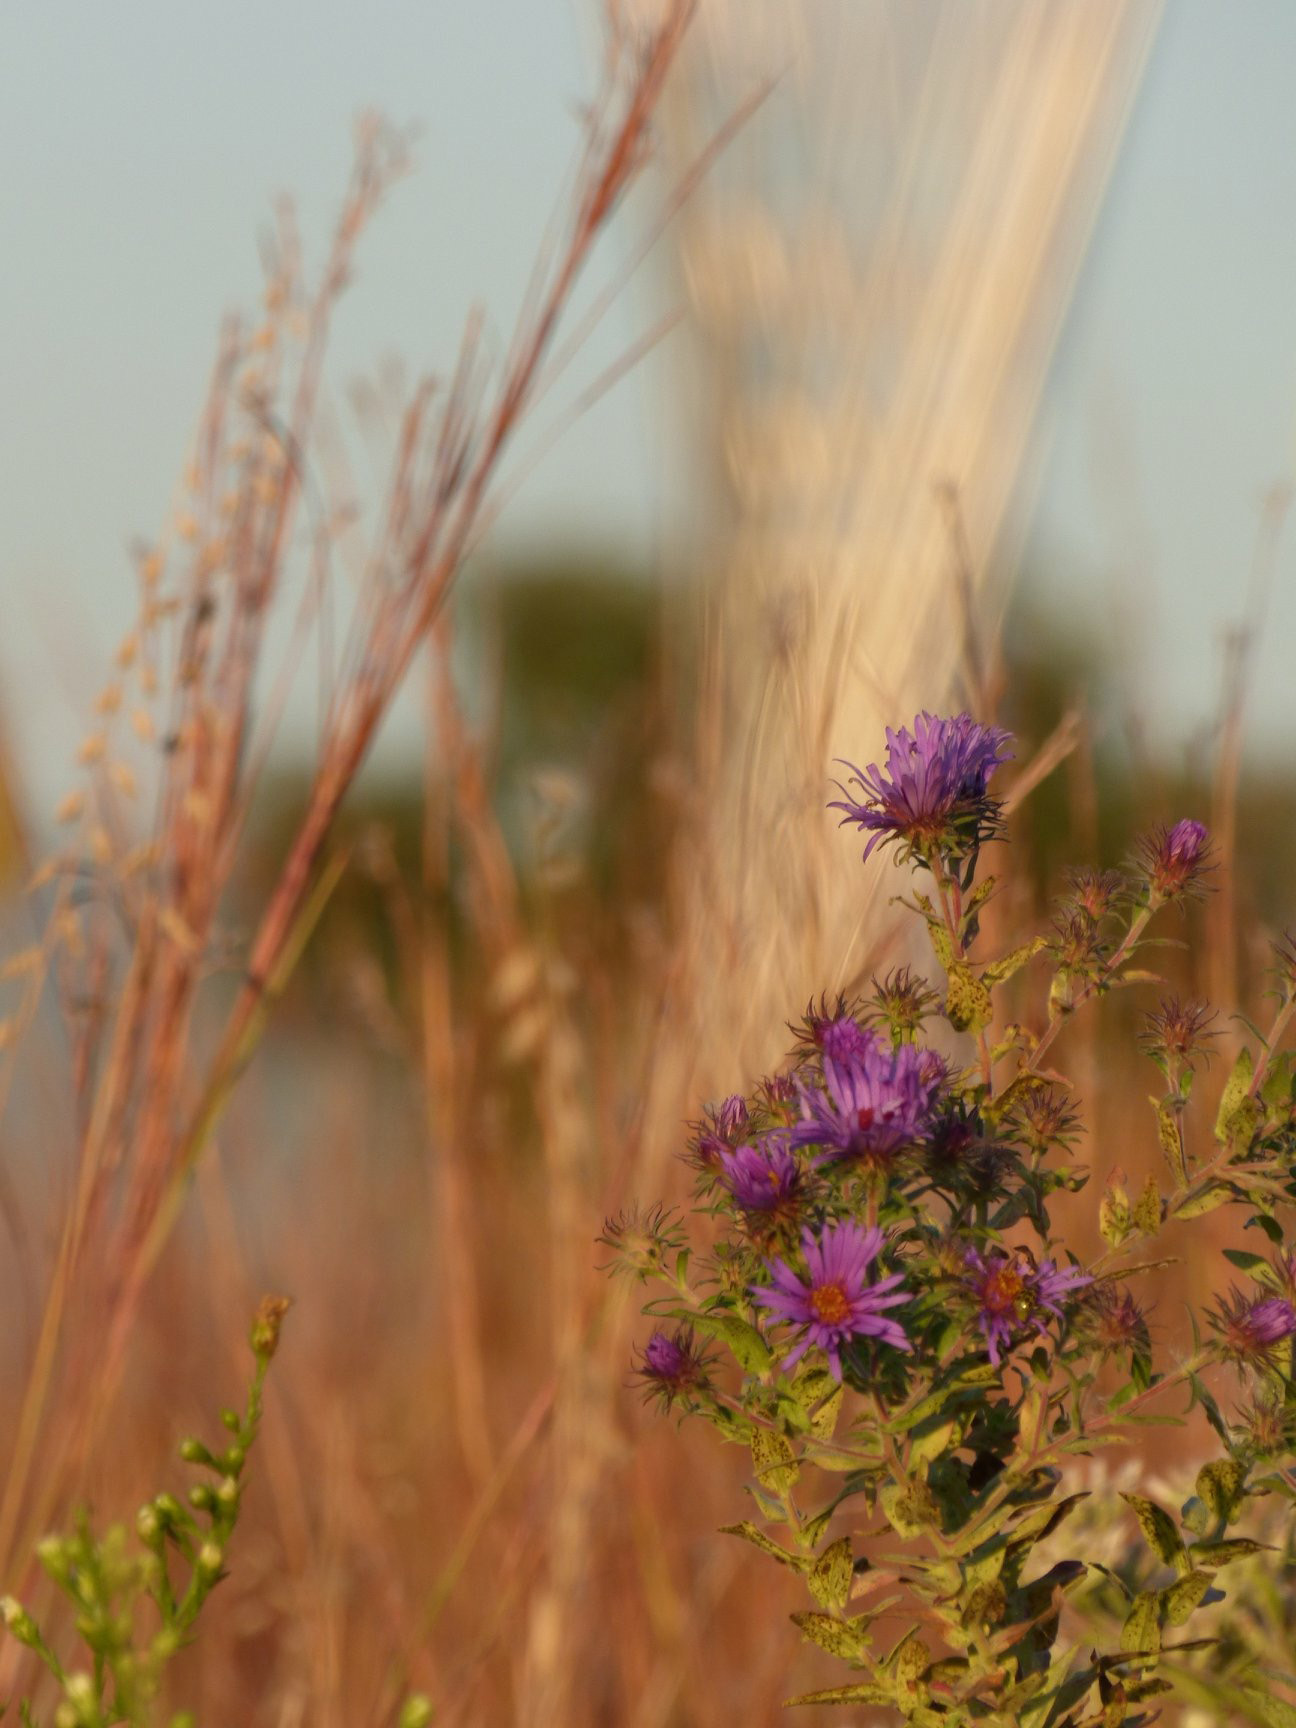 New England aster is seen in a Fermilab in the fall. nature, plant, flower, New England aster Photo: Amy Scroggins